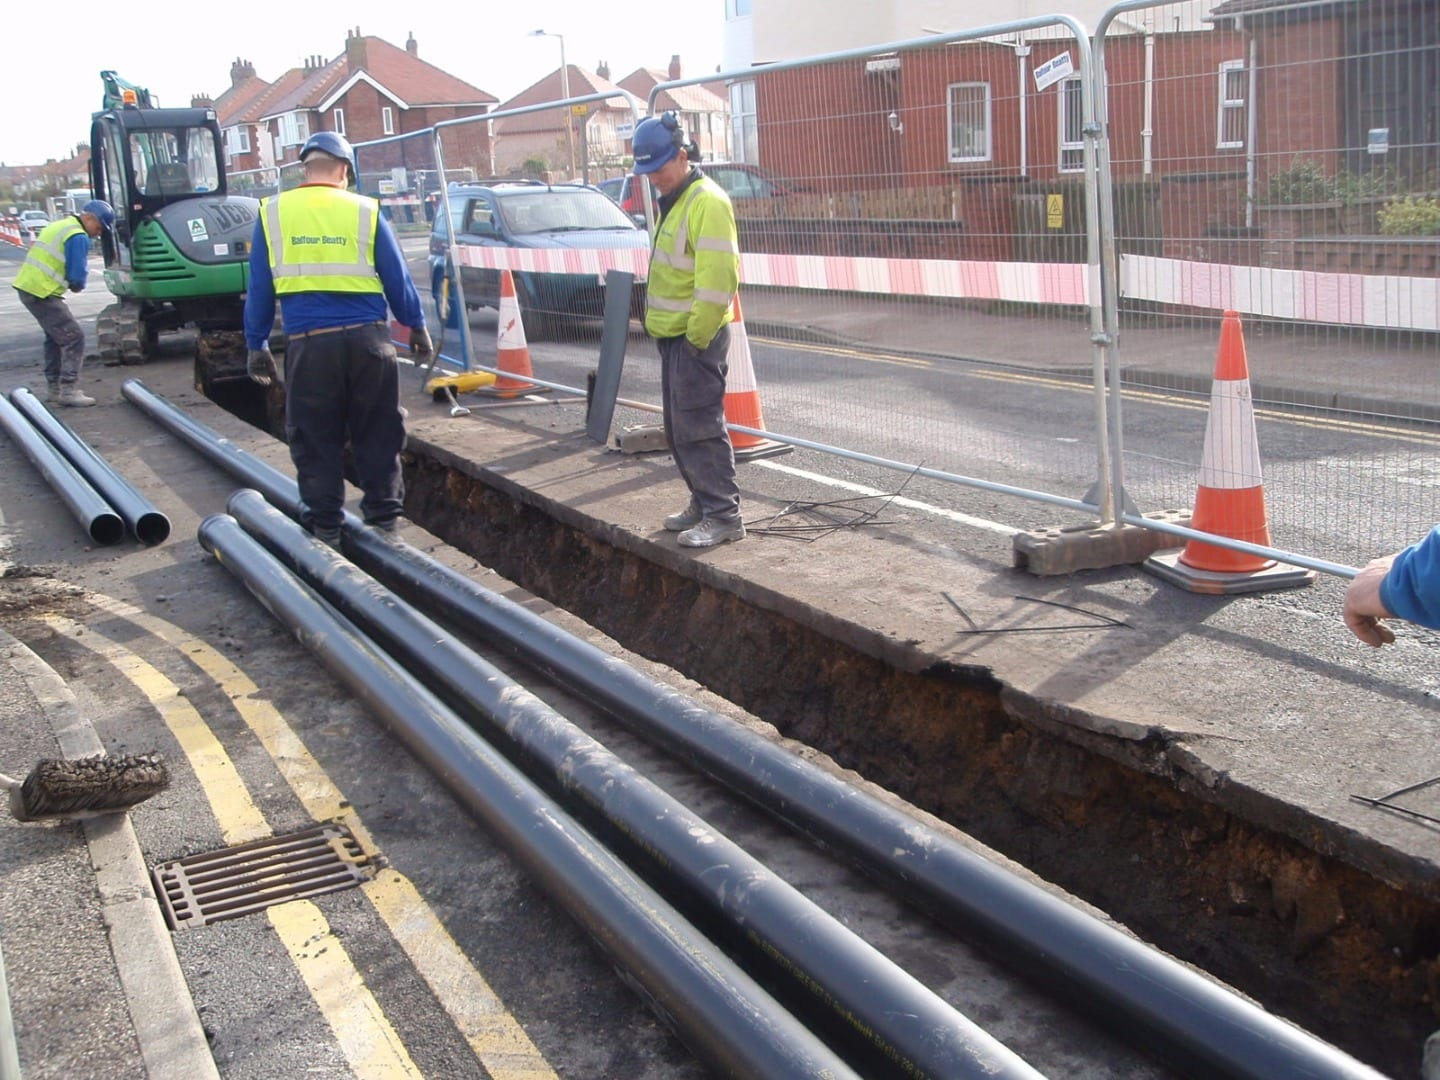 Installing the cable for the Walney Offshore windfarm along Thornton Gate in Cleveleys